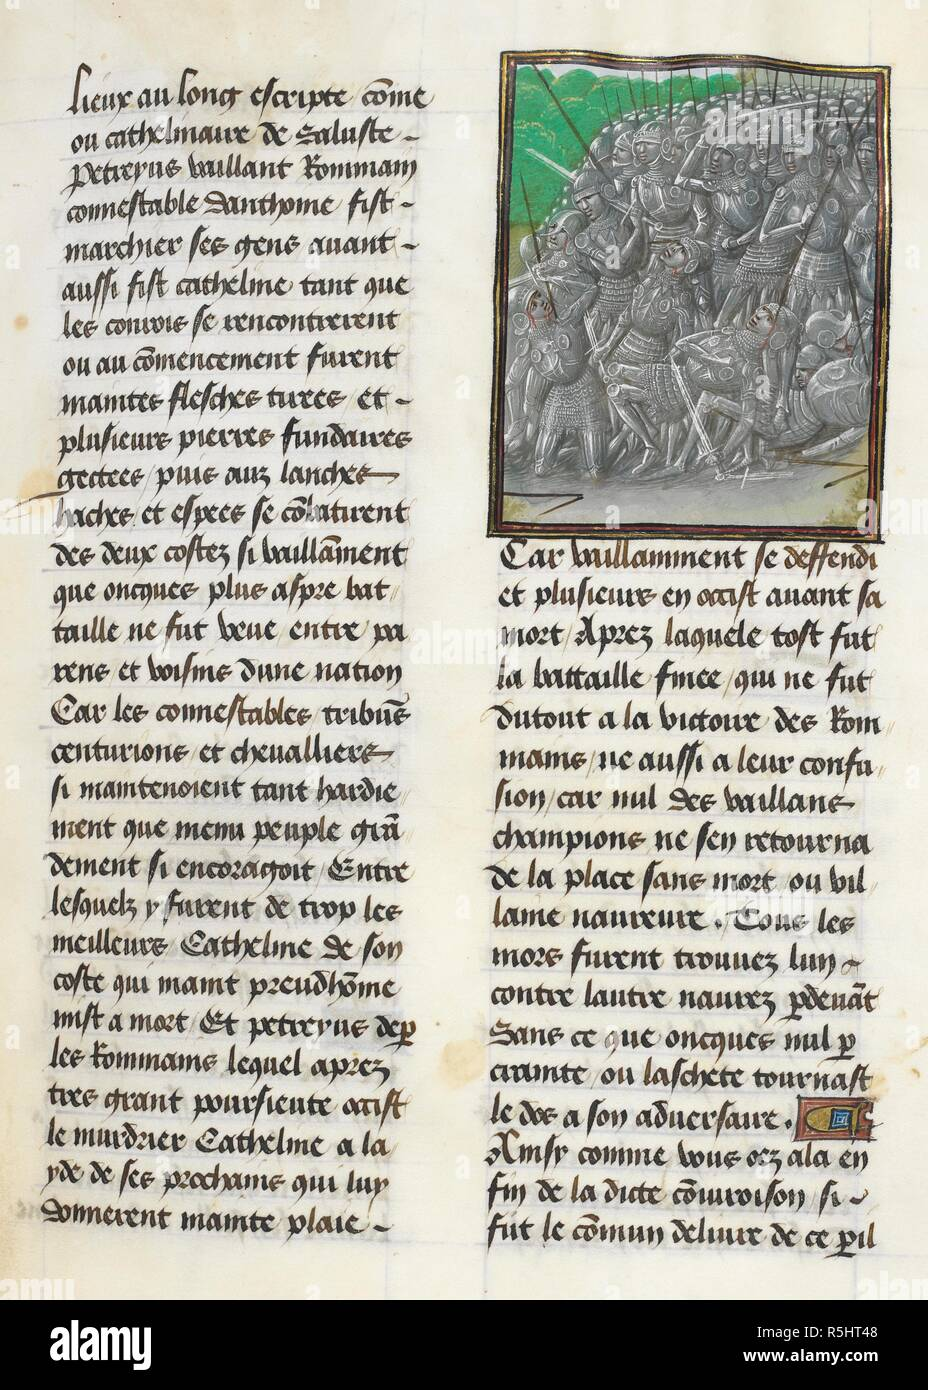 Defeat of Catiline (Book 1, 32). Caesar, translated by Jan Du Quesne (or Jean Duchesne), Bellum Gallicum ( Les commentaires de Cesar ). 1473-1476. Source: Royal 16 G.VIII, f.67. Author: JULIUS CAESAR. Du Quesne, Jehan. Circle of the Master of the London Wavrin. - Stock Image